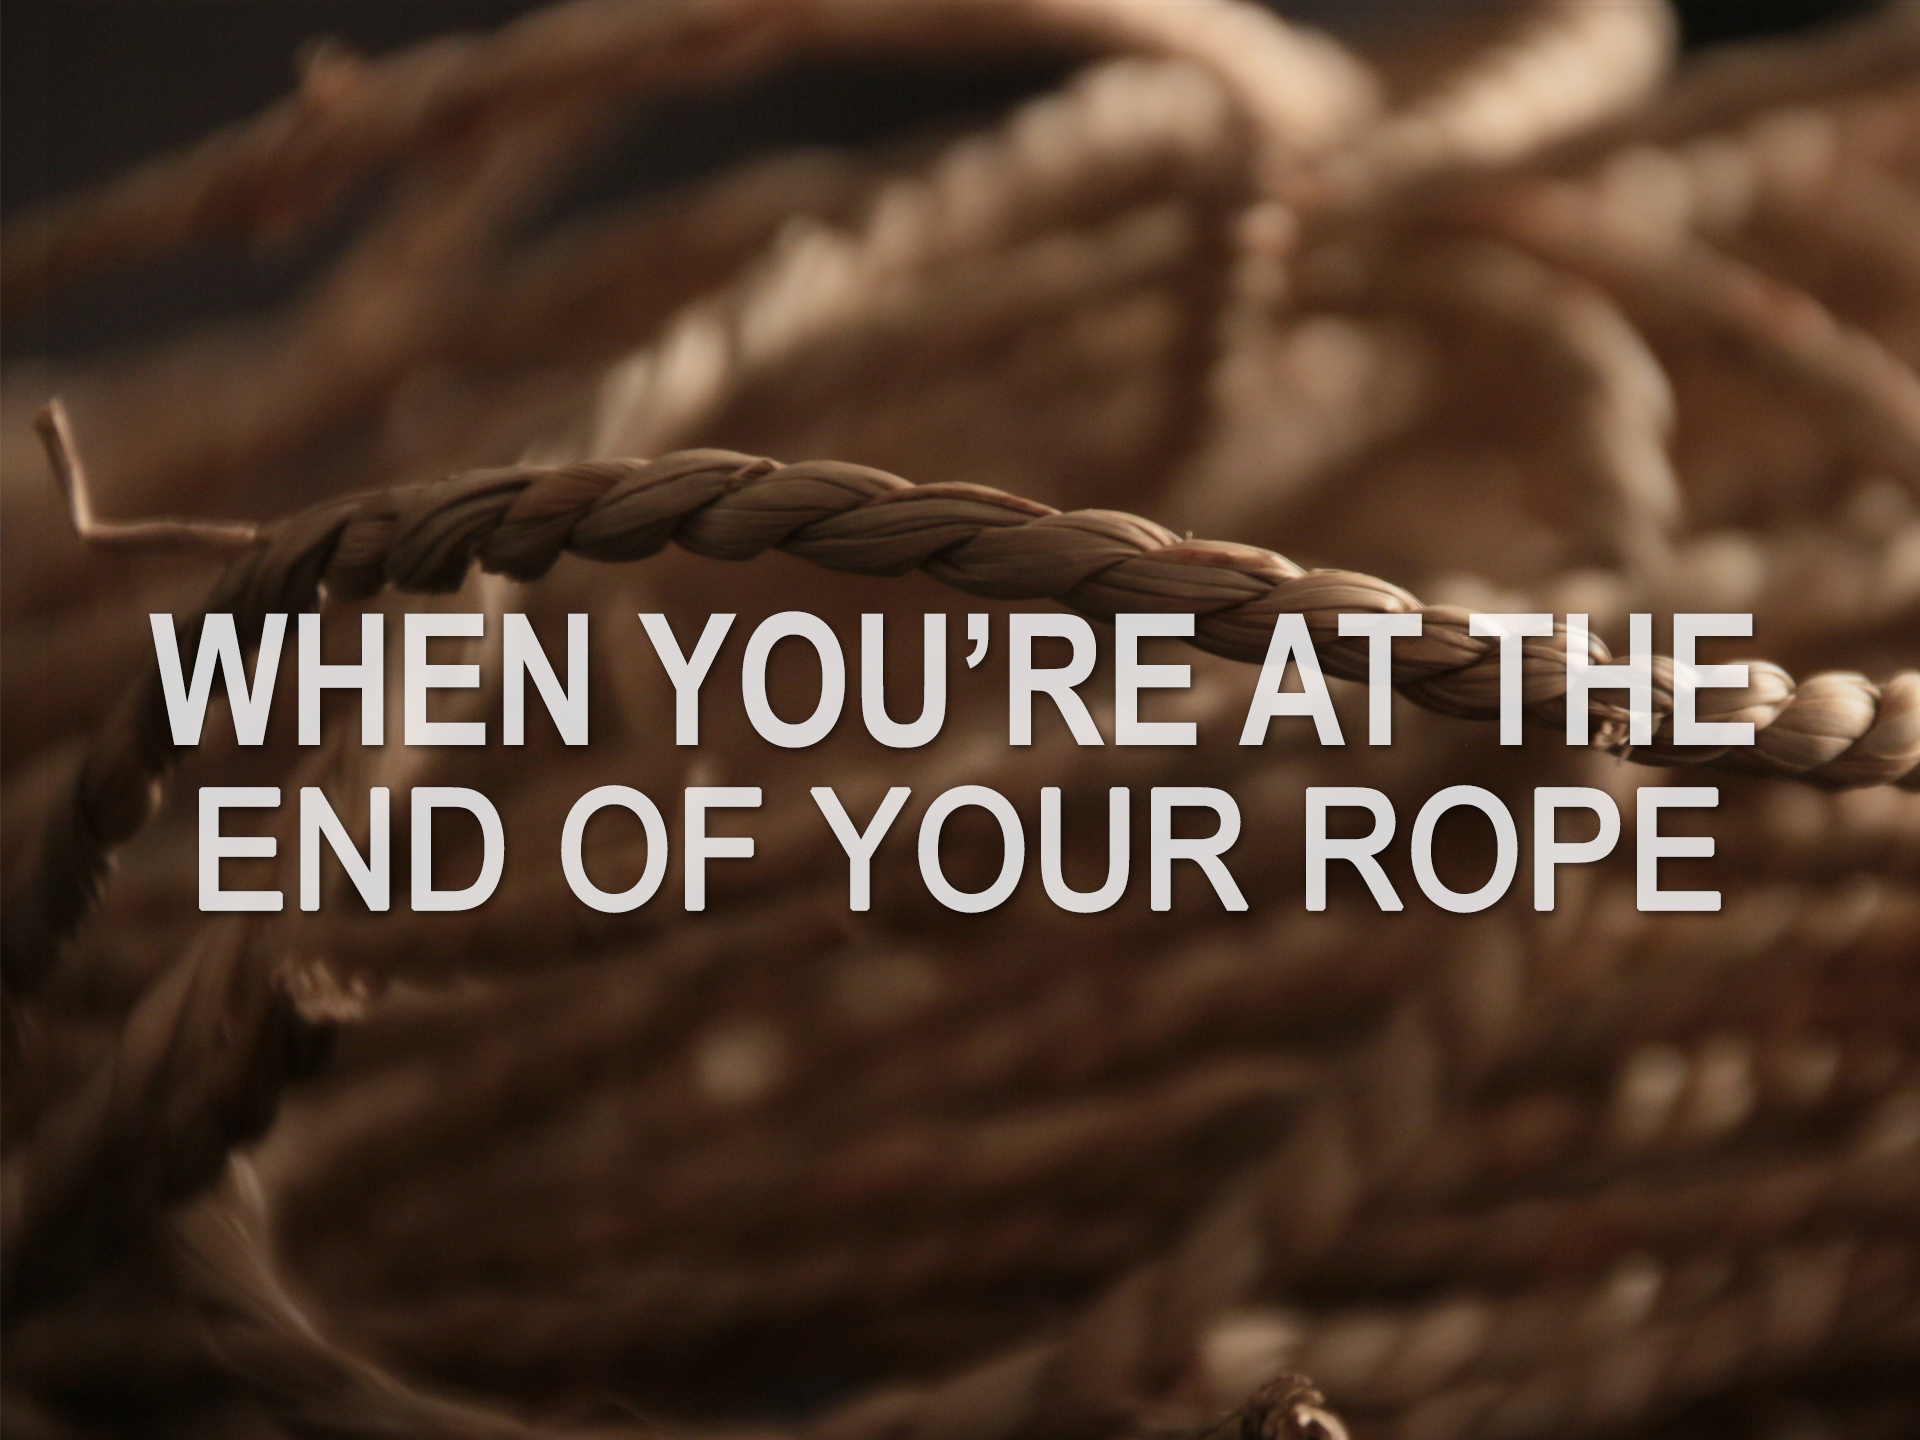 20180513  When You're at the End of Your Rope.png